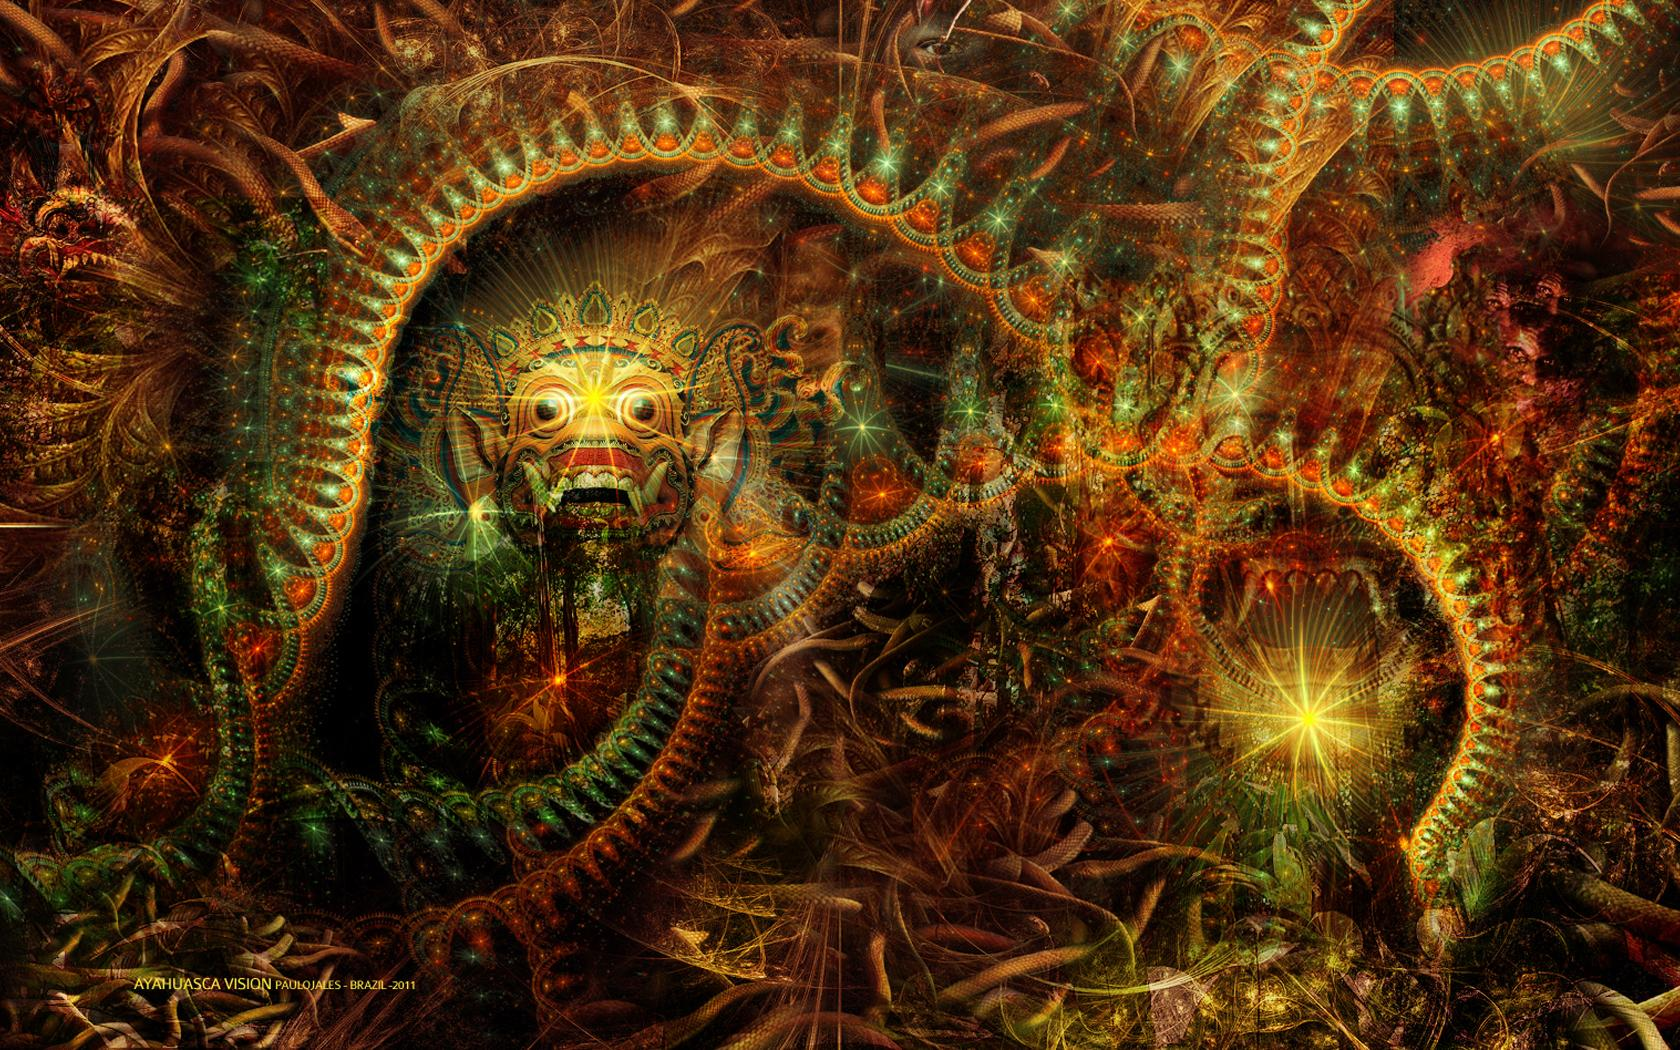 darkside ayahuasca-vision-by-paulo-jales-2